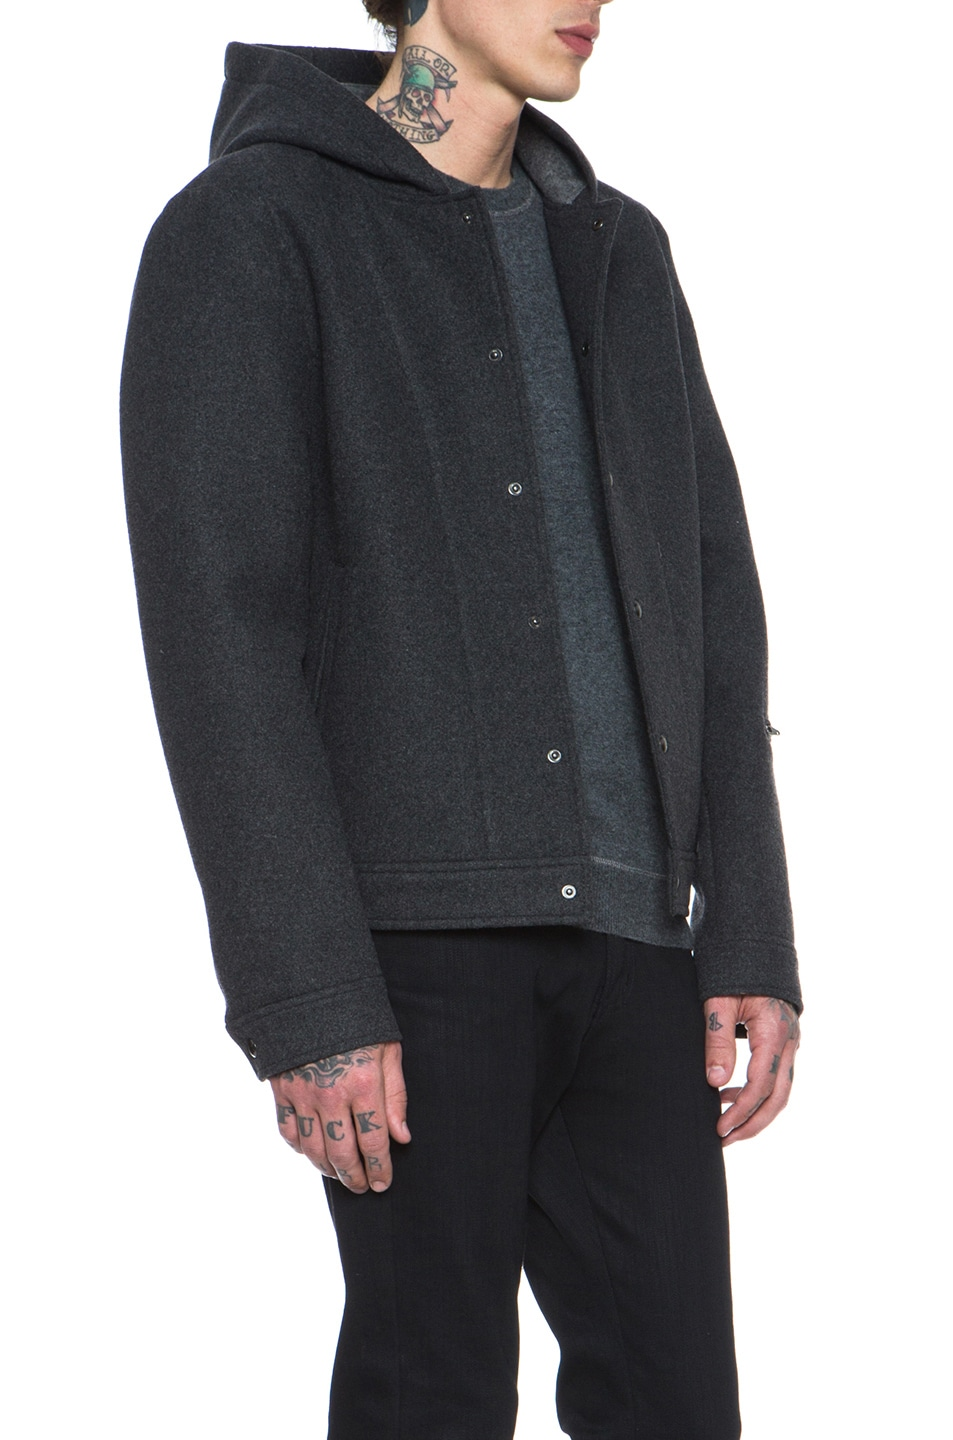 b72fc5d2d8374 Image 4 of T by Alexander Wang Wool Bonded Neoprene Jacket in Charcoal